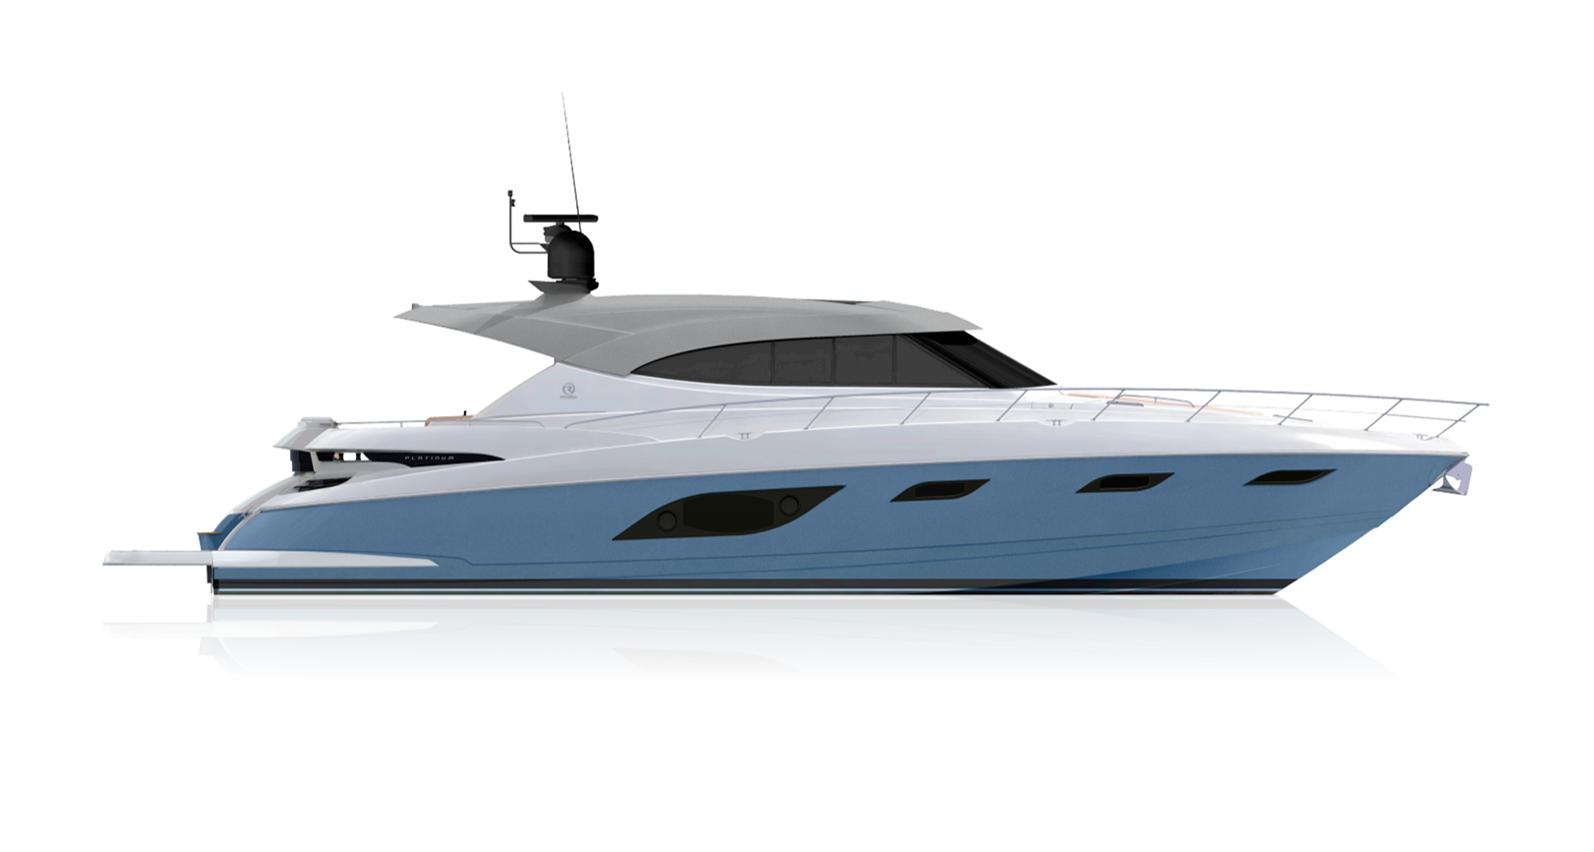 2021 Riviera 6000 Sport Yacht #R103 inventory image at Sun Country Coastal in Newport Beach